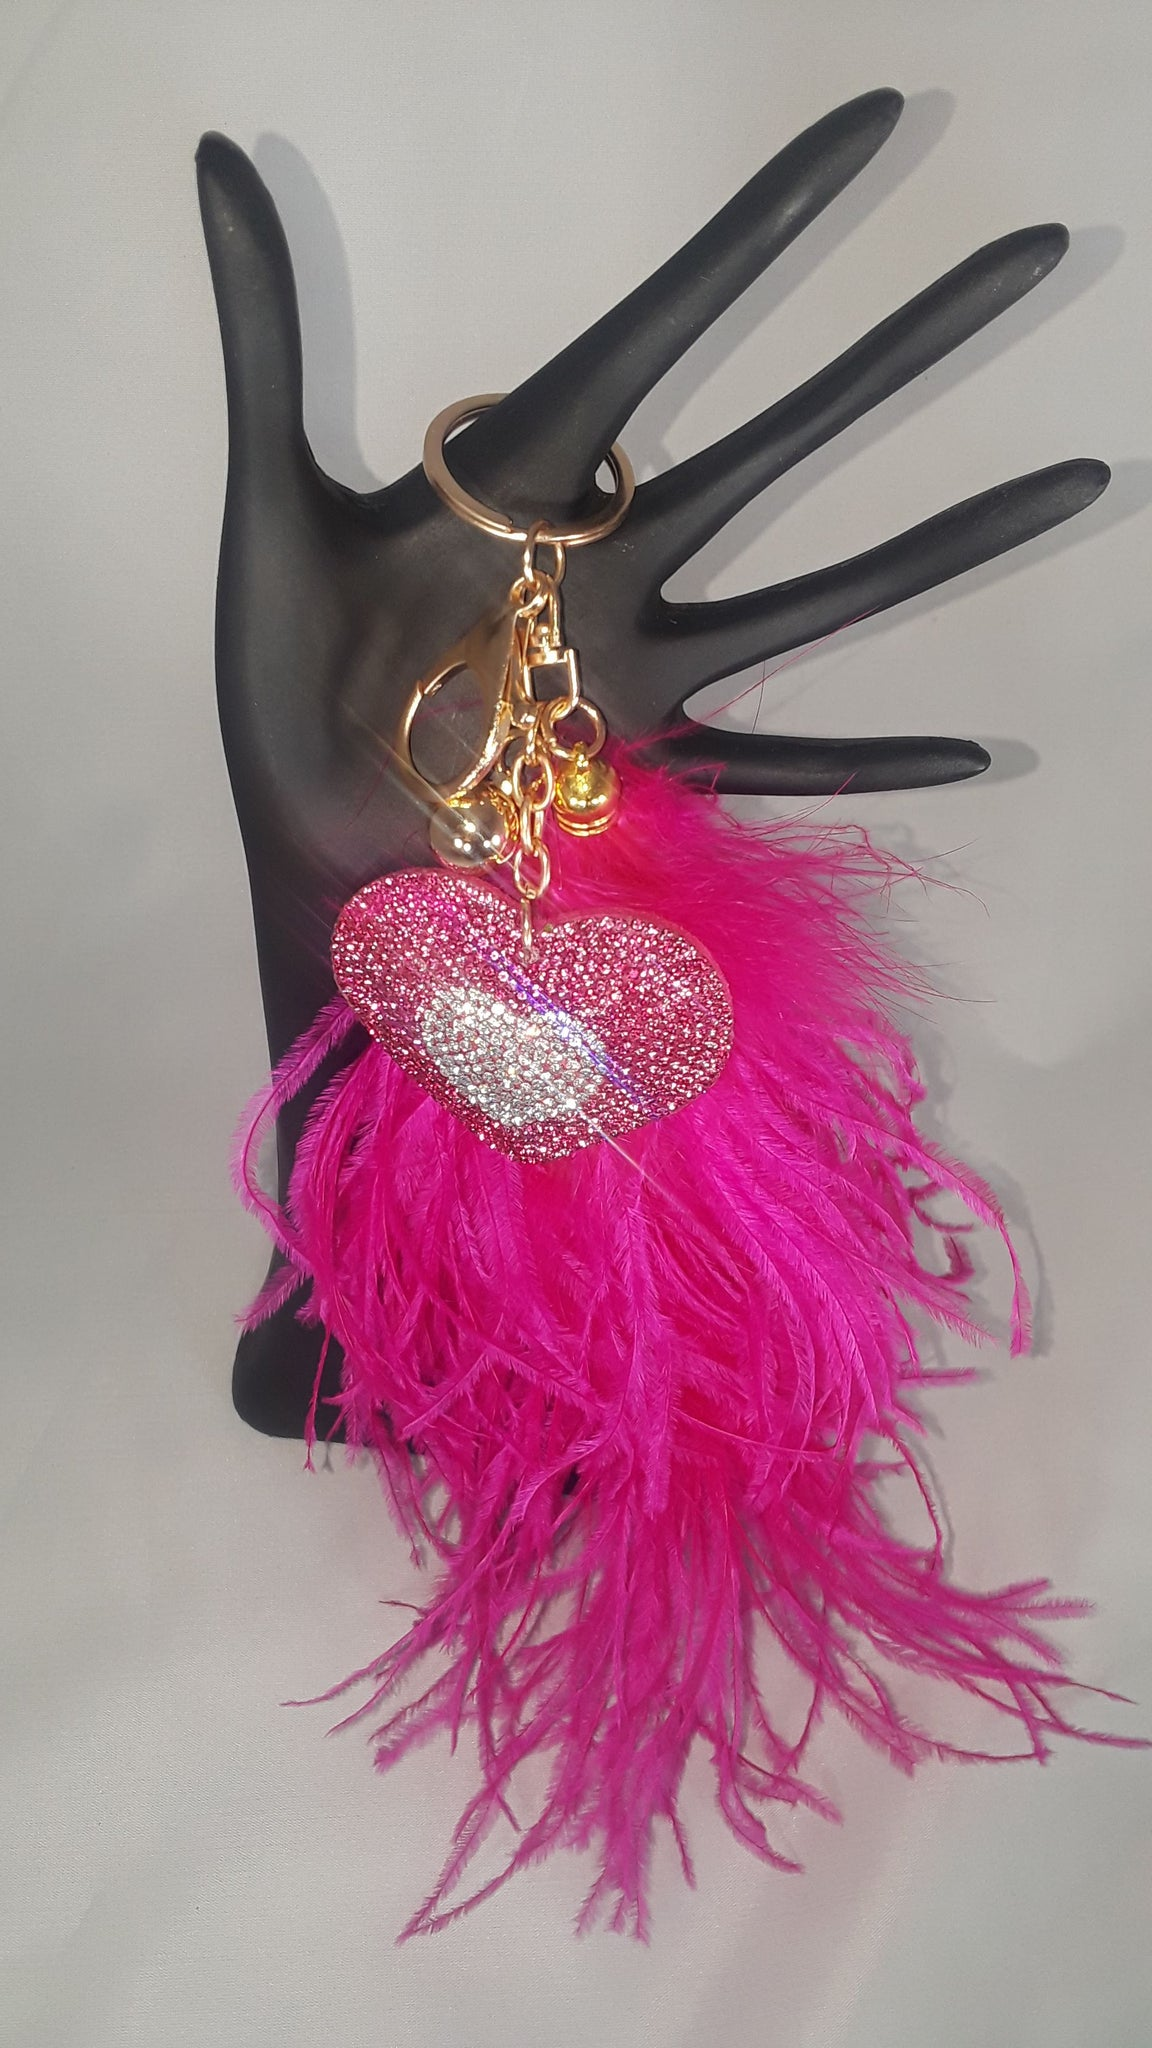 Crystal Heart Keychain w/ Ostrich Feather 'Tail'